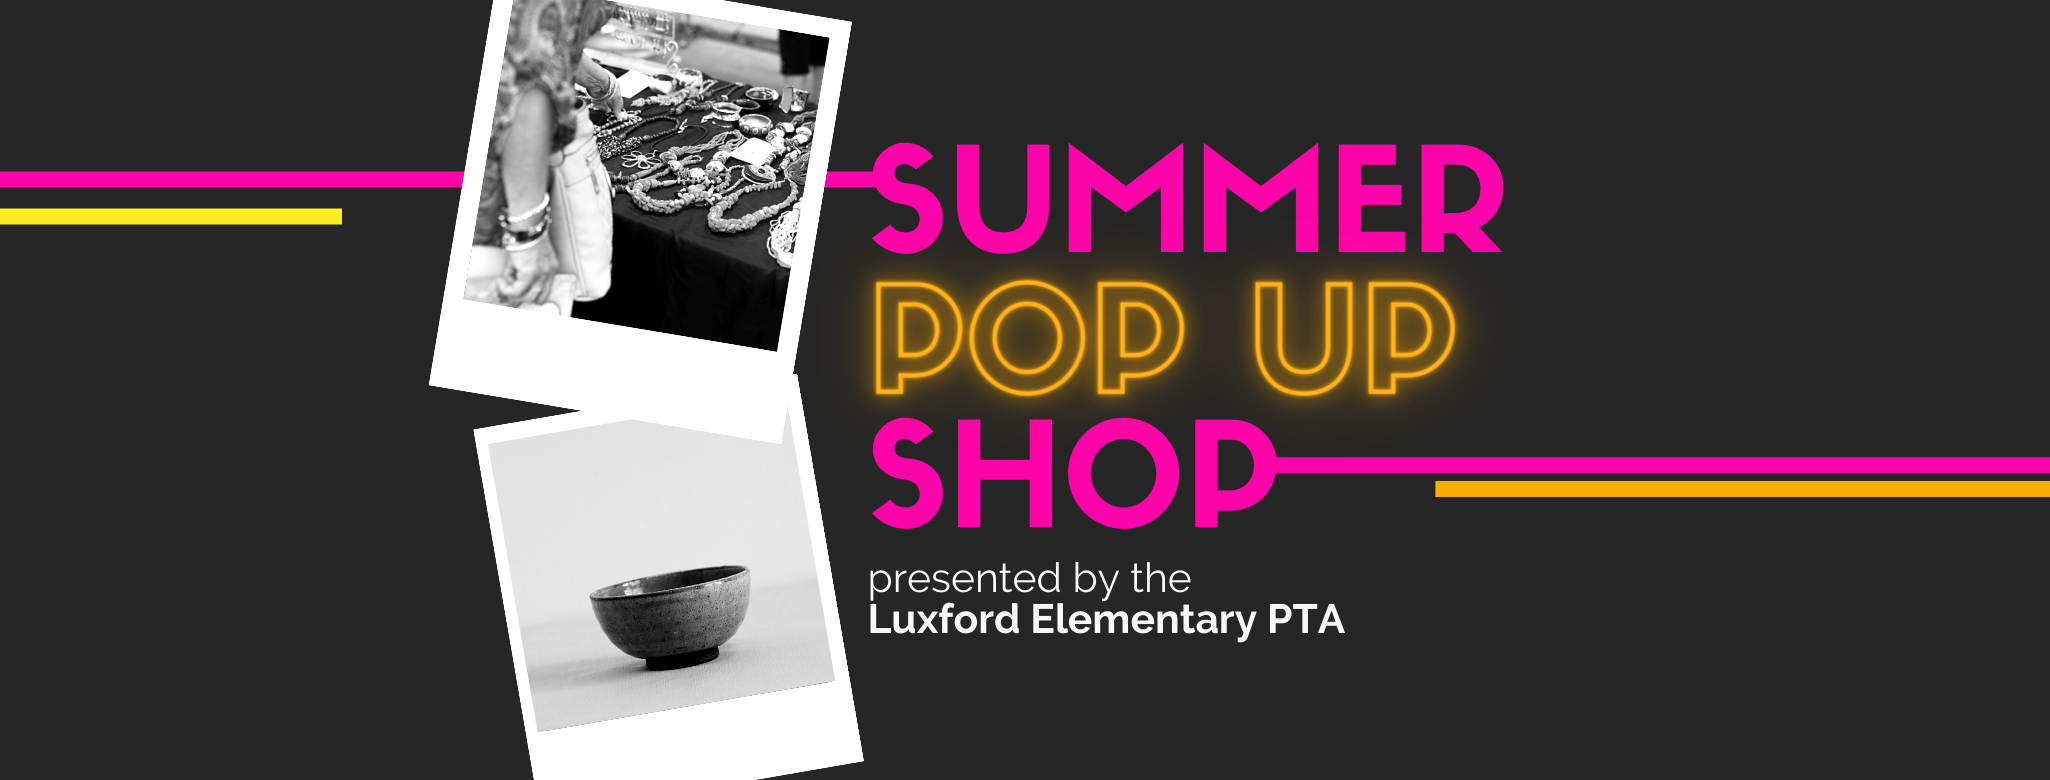 Luxford Summer Pop Up Shop Cover Photo